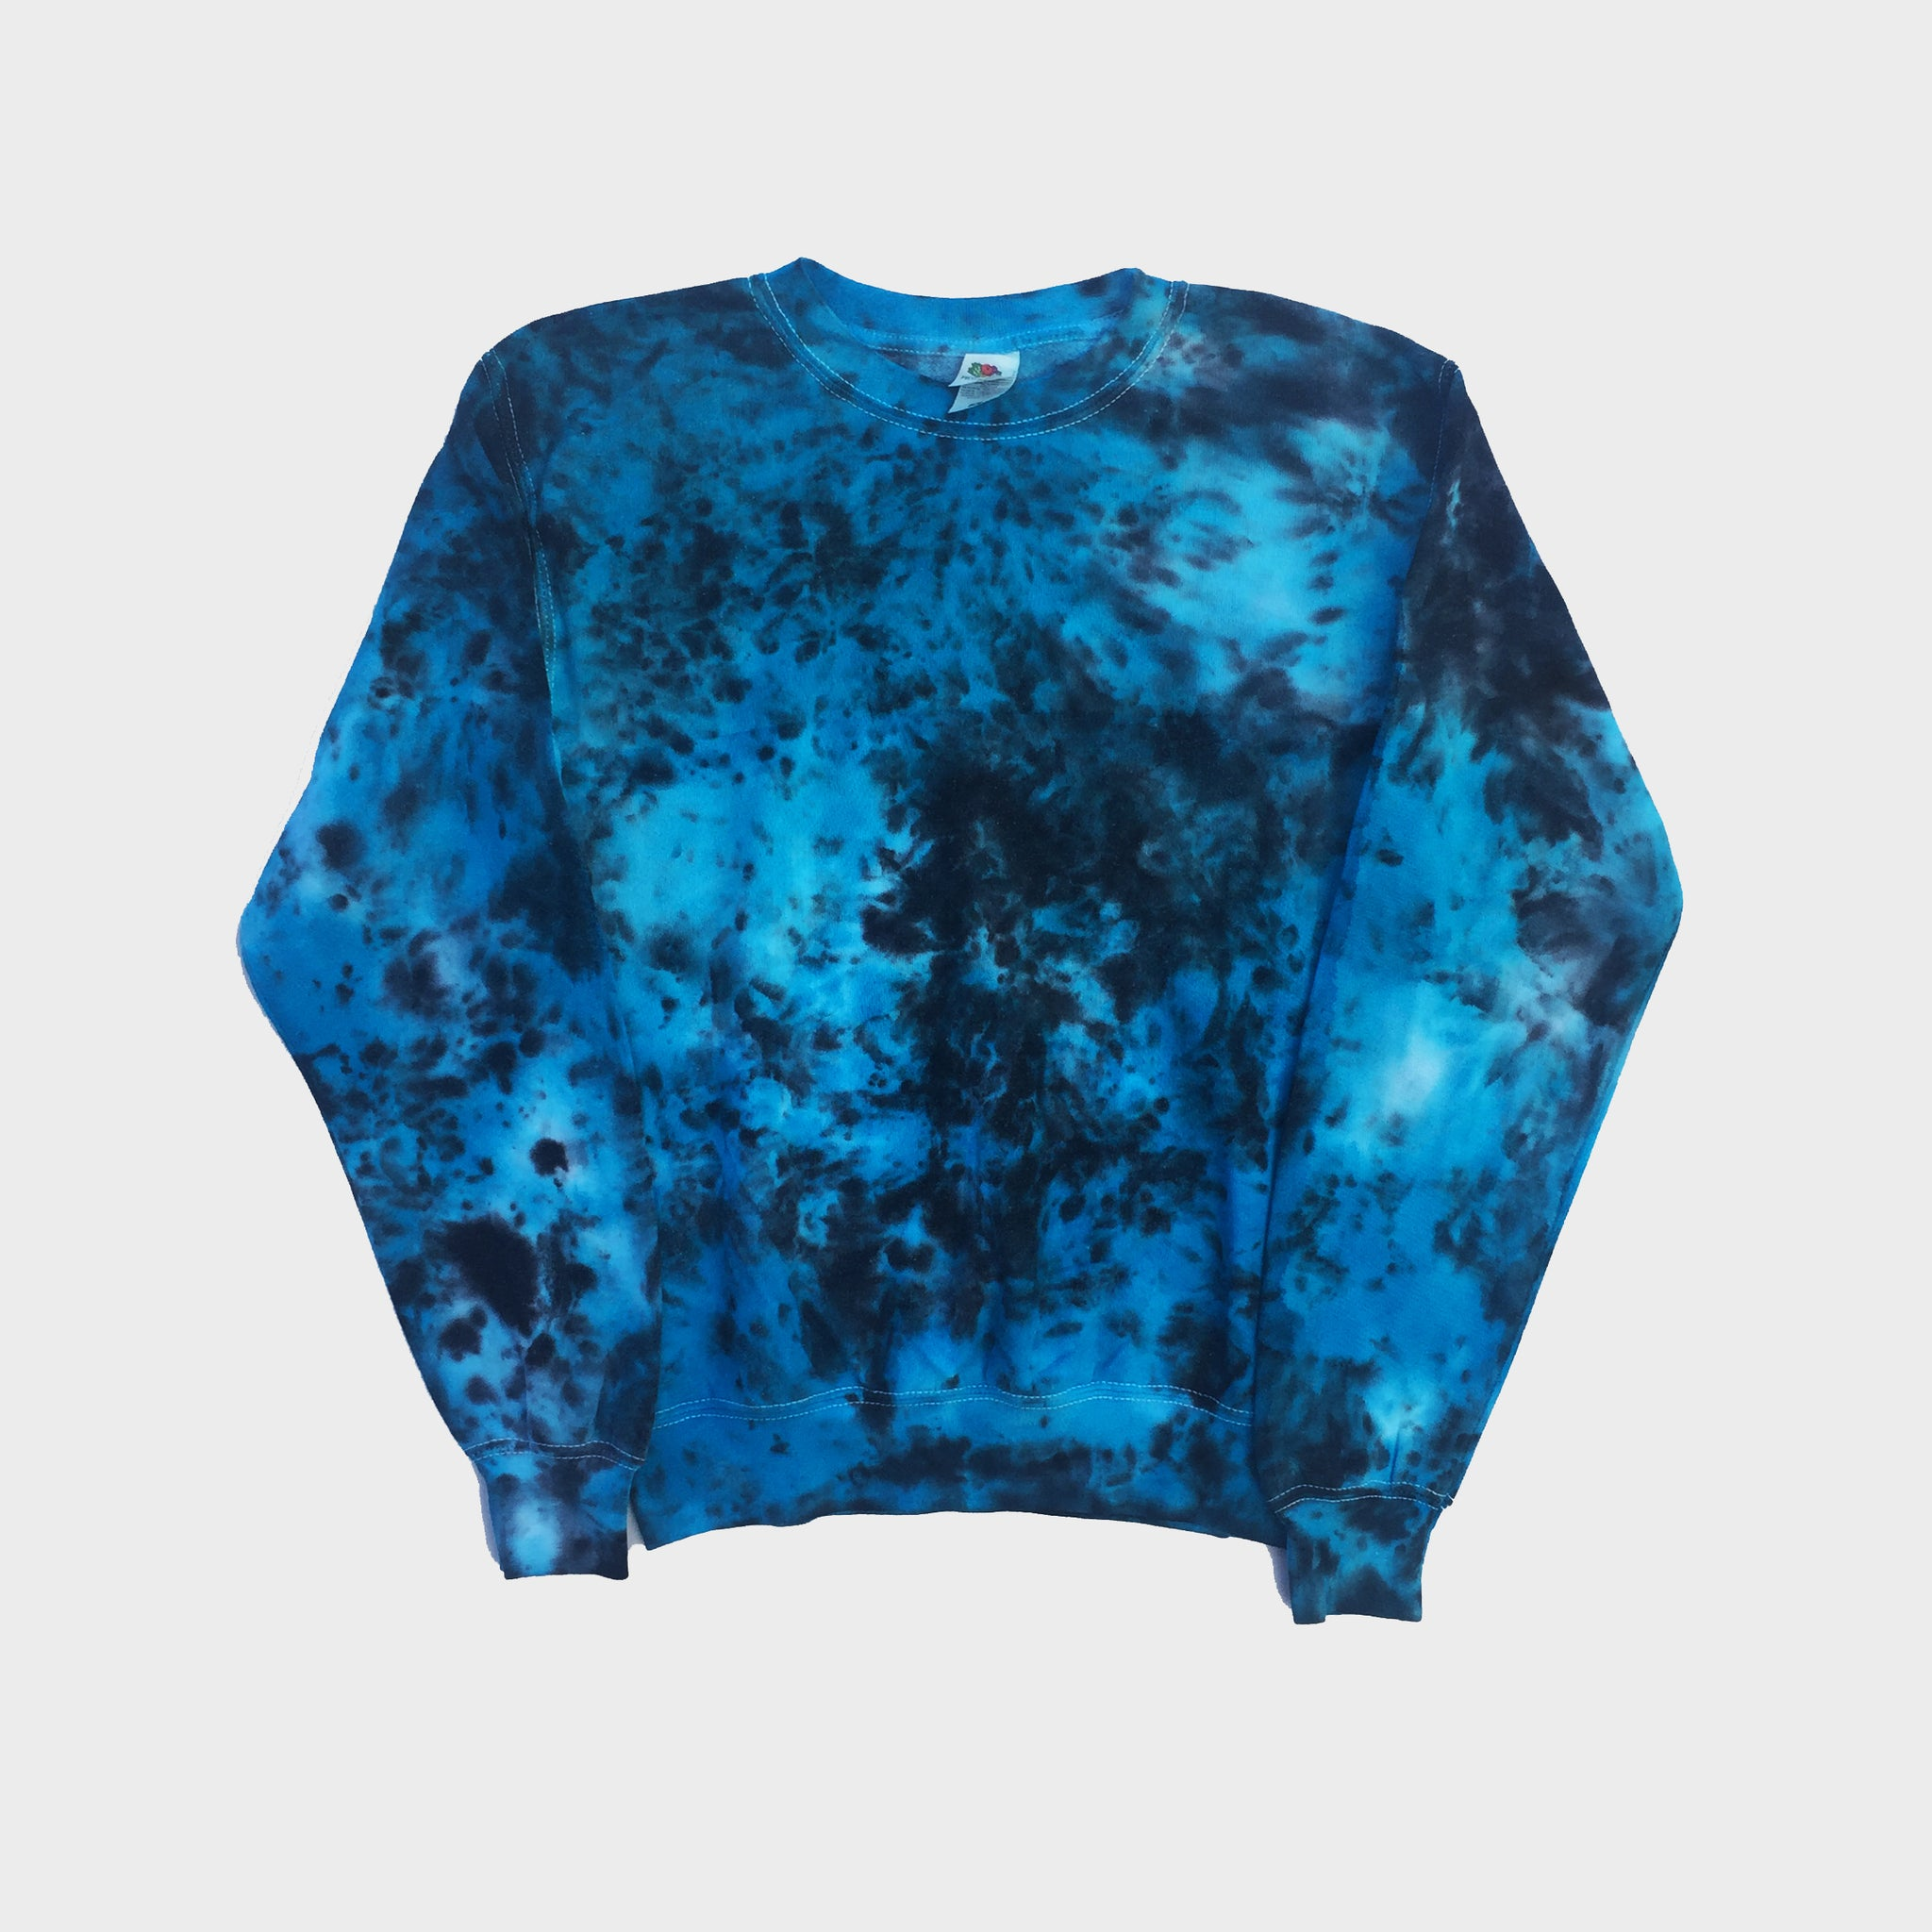 Blue/Black Tie Dye Sweatshirt